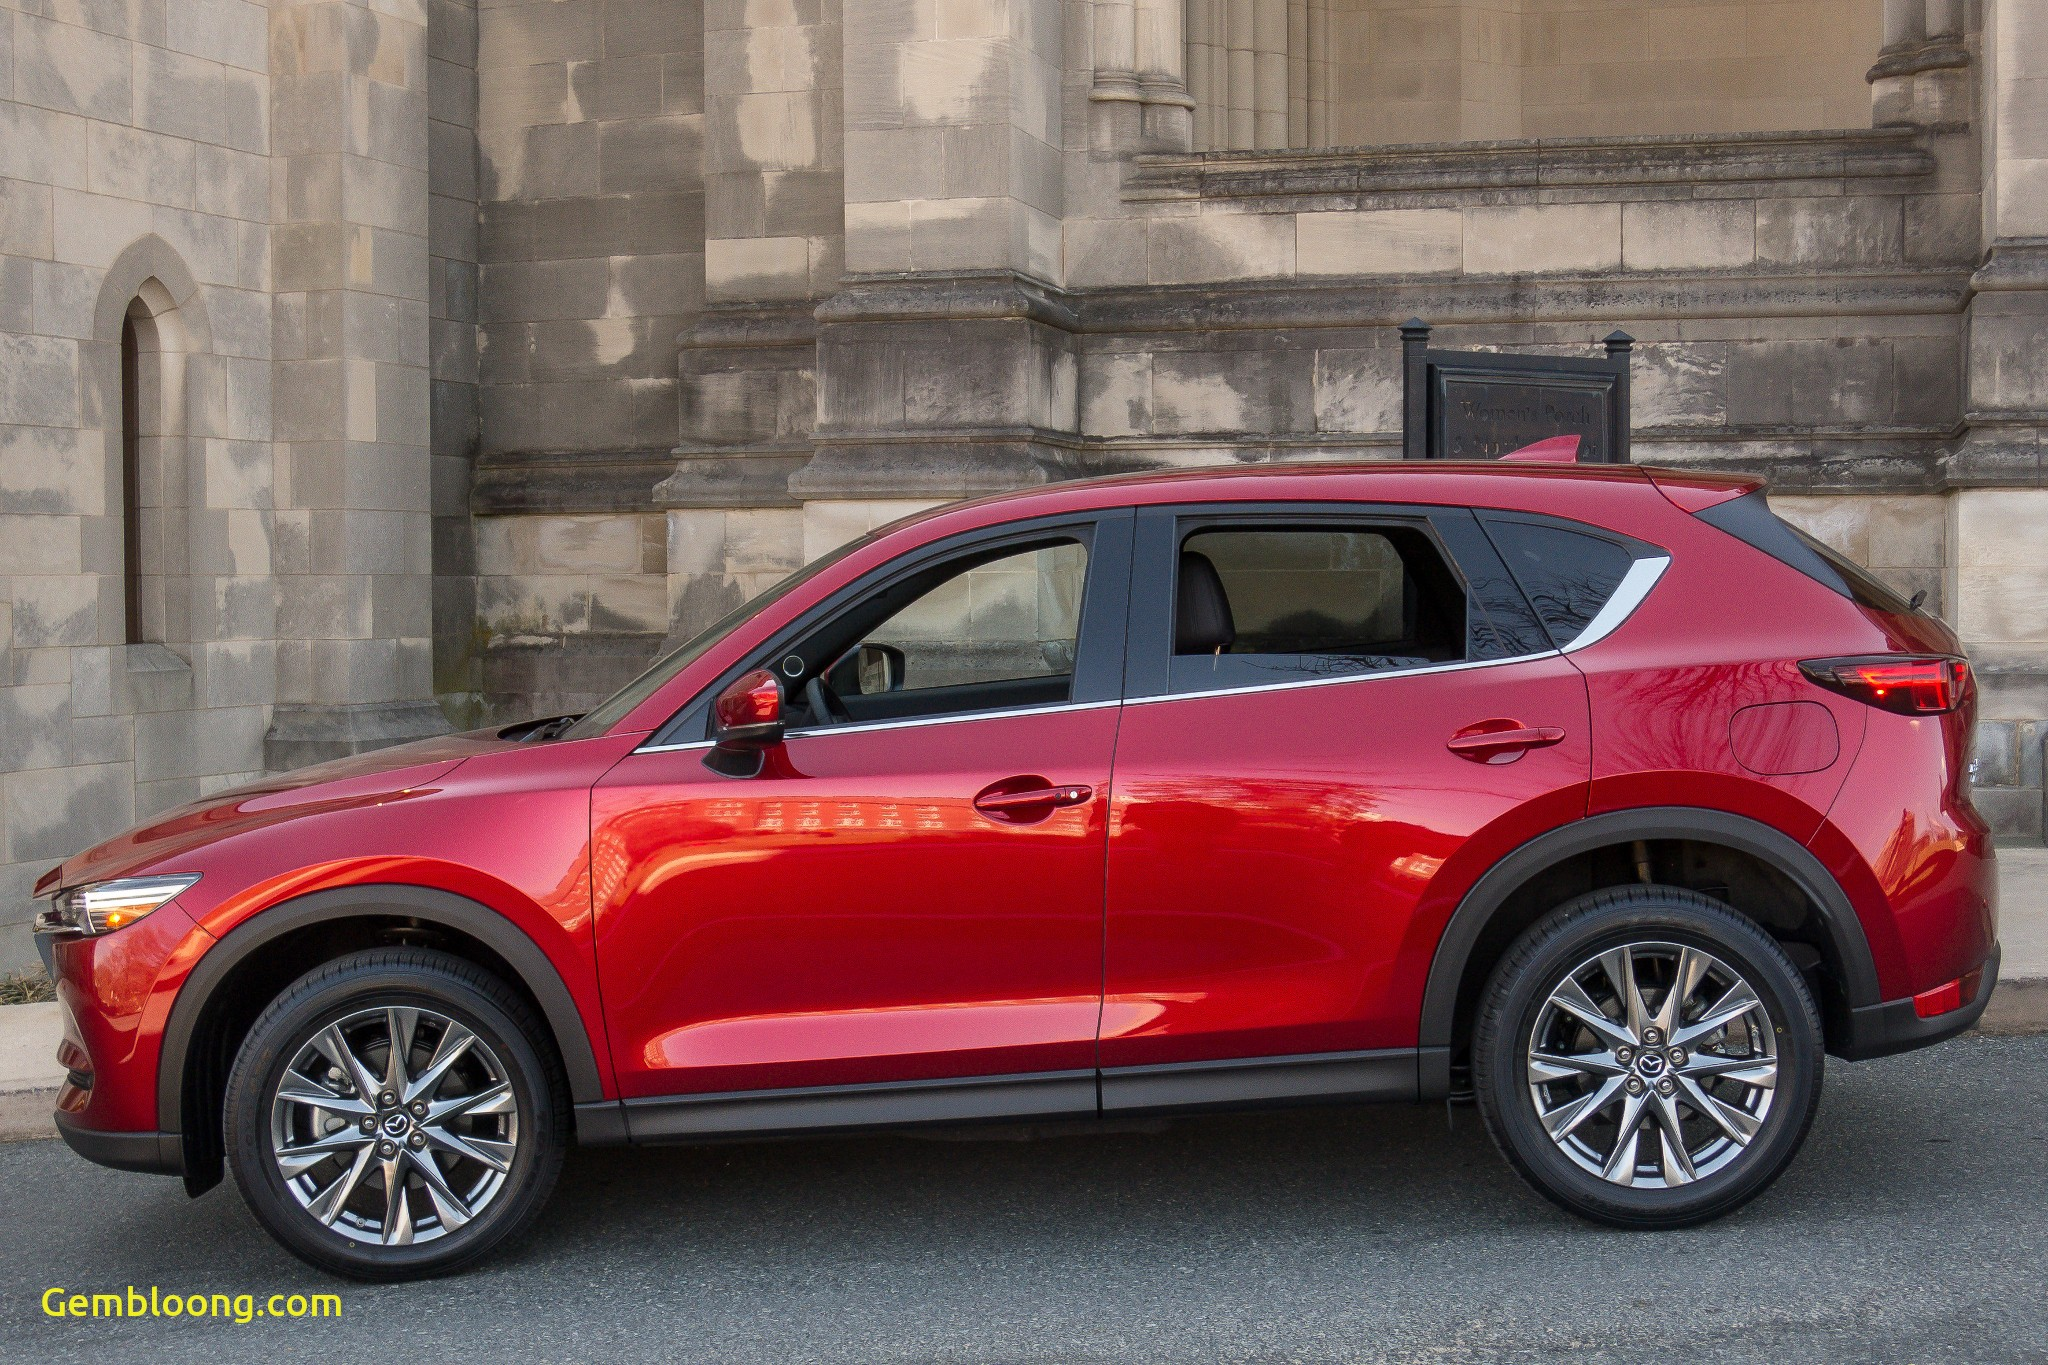 Used Mazda Cx 5 Luxury 2019 Mazda Cx 5 10 Things We Like and 4 Not so Much